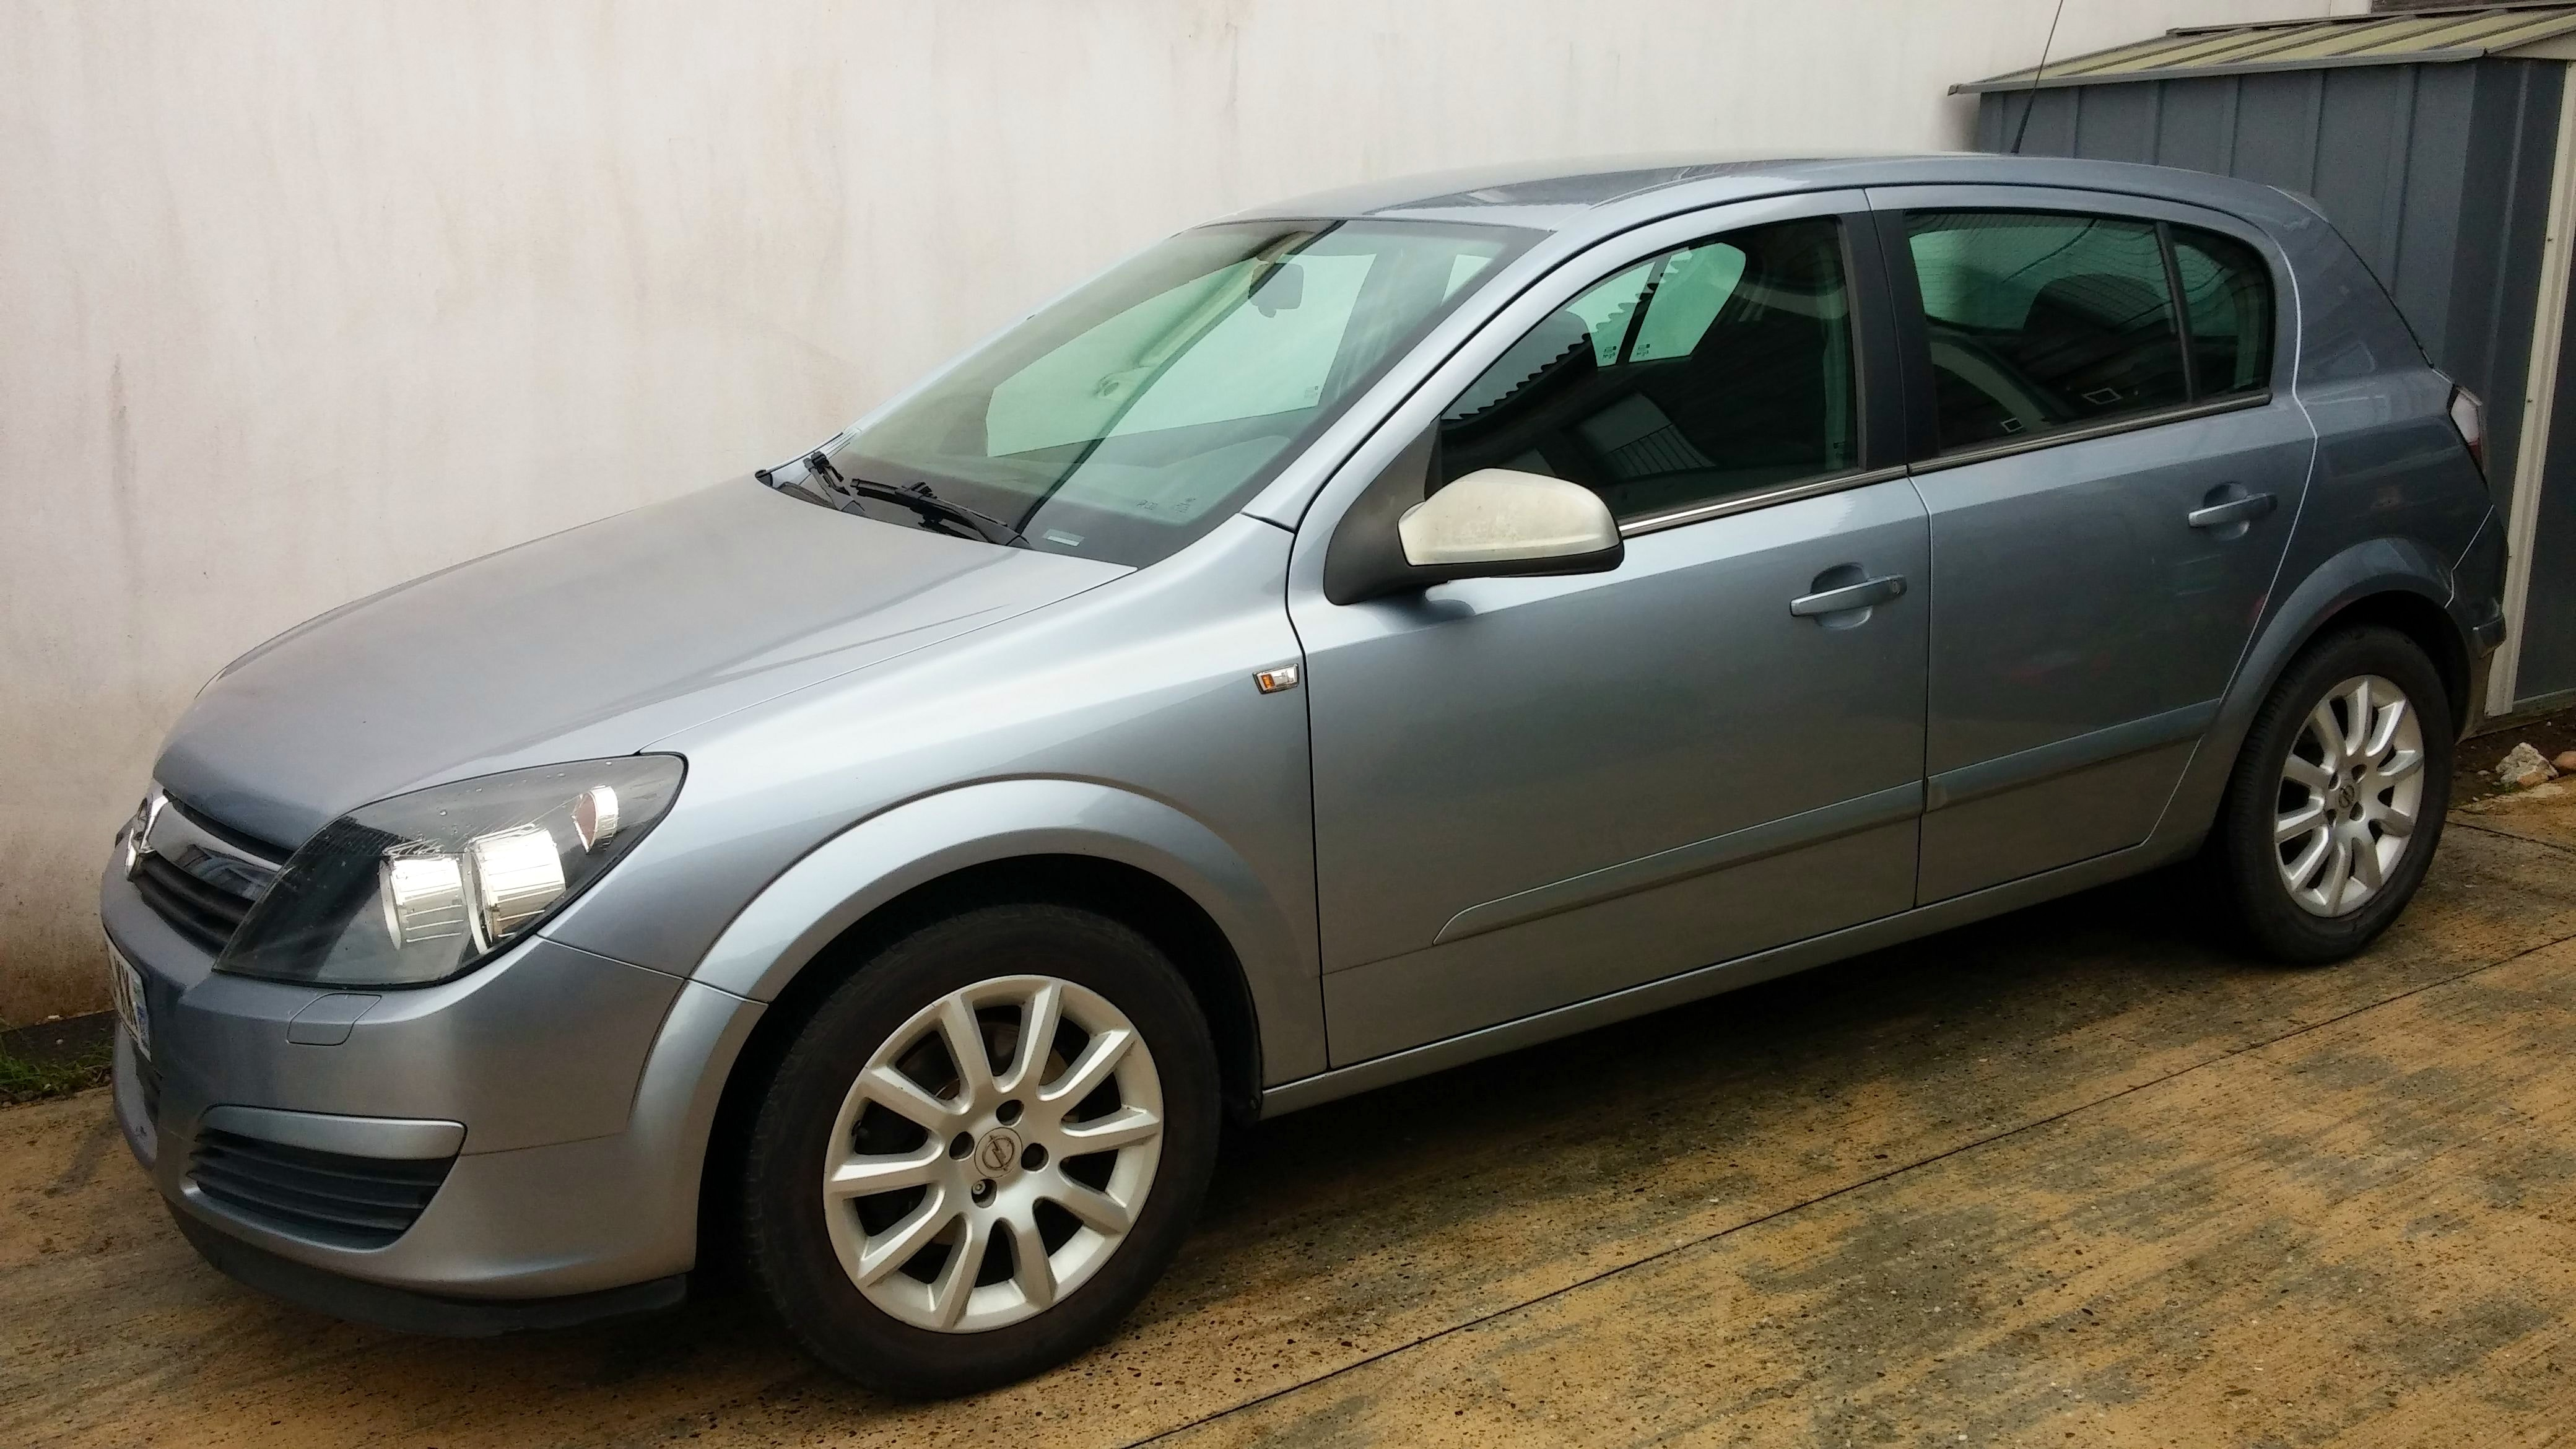 Opel Astra H 1.6 Twinport 105, 2005